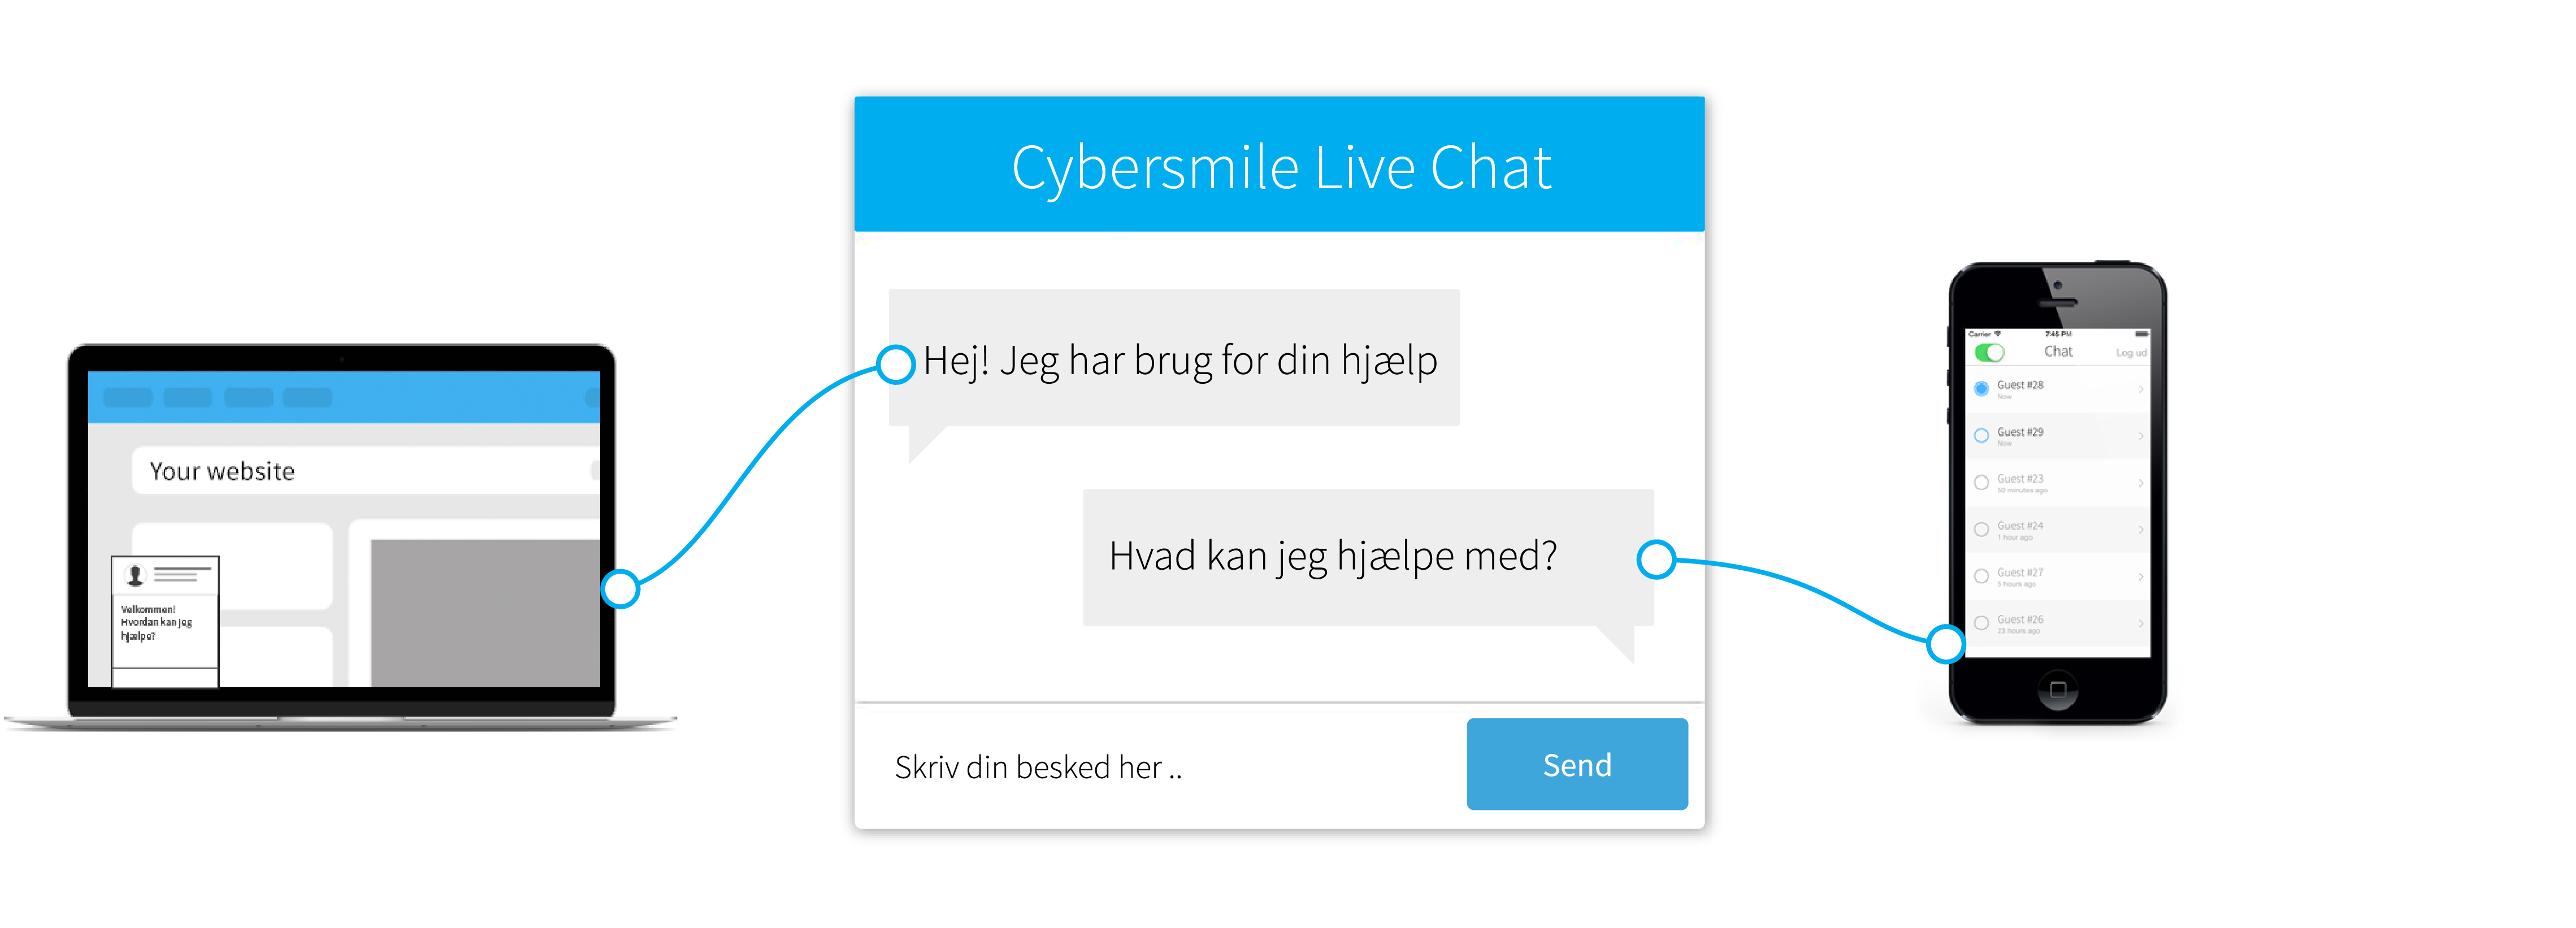 cybersmile live chat forklaring